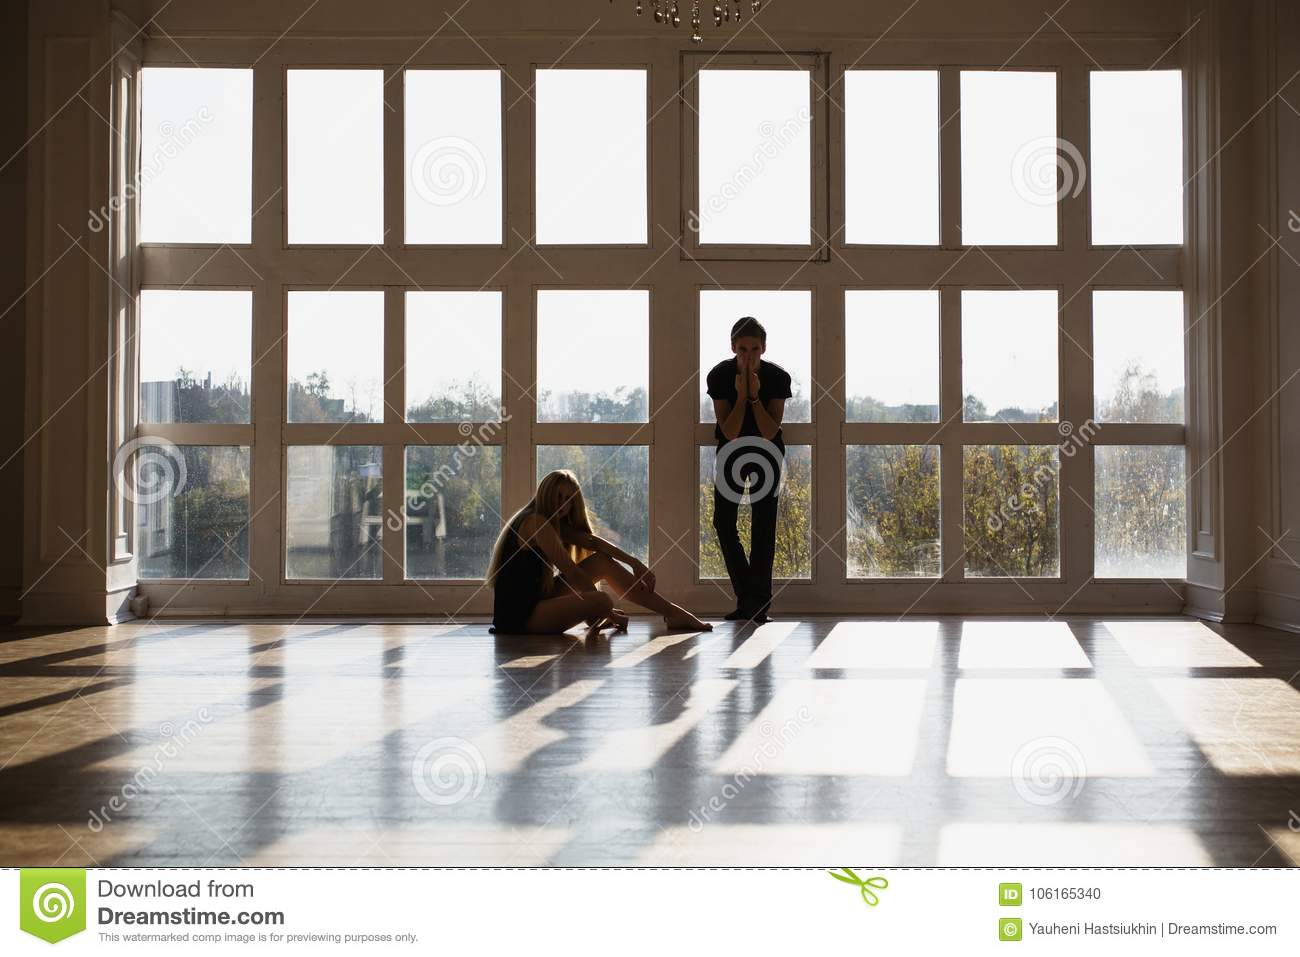 A young boy and girl with long blond hair standing in front of the window. Dancers during a workout.